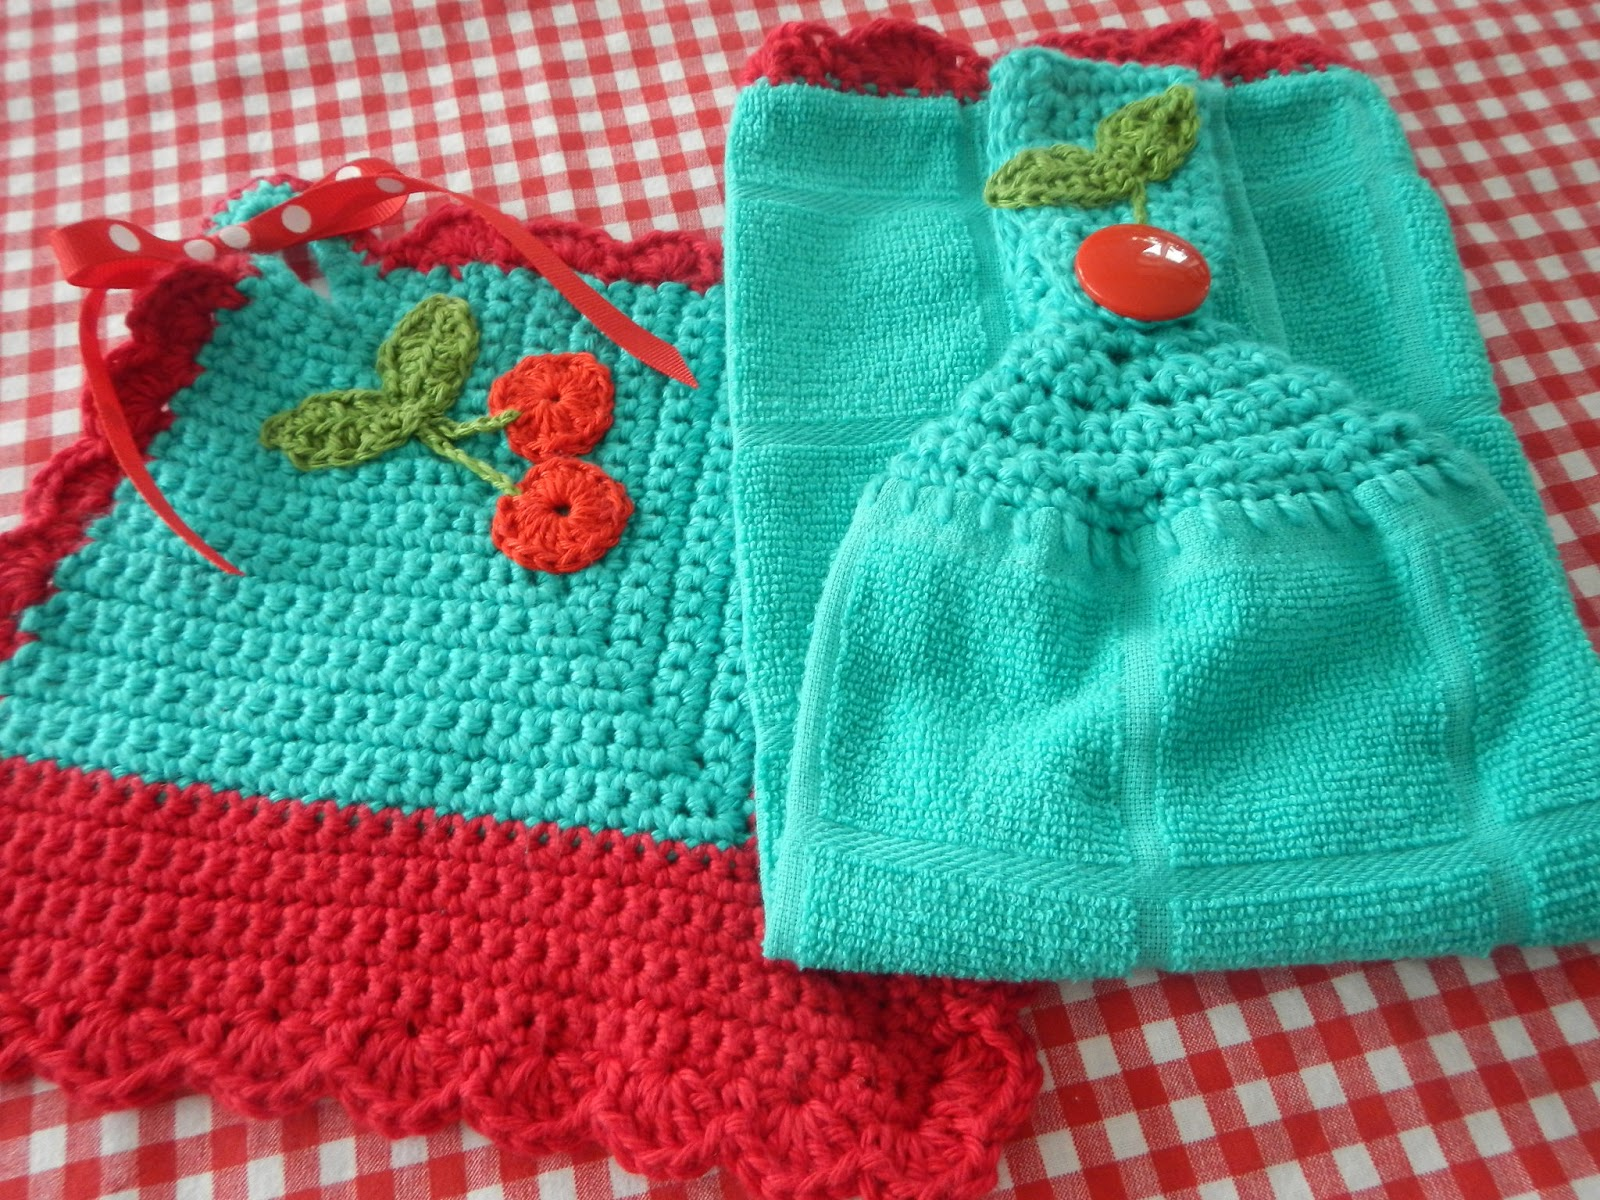 Apple Blossom Dreams: Bi-Colored Cherry Dishcloths and a Towel ...